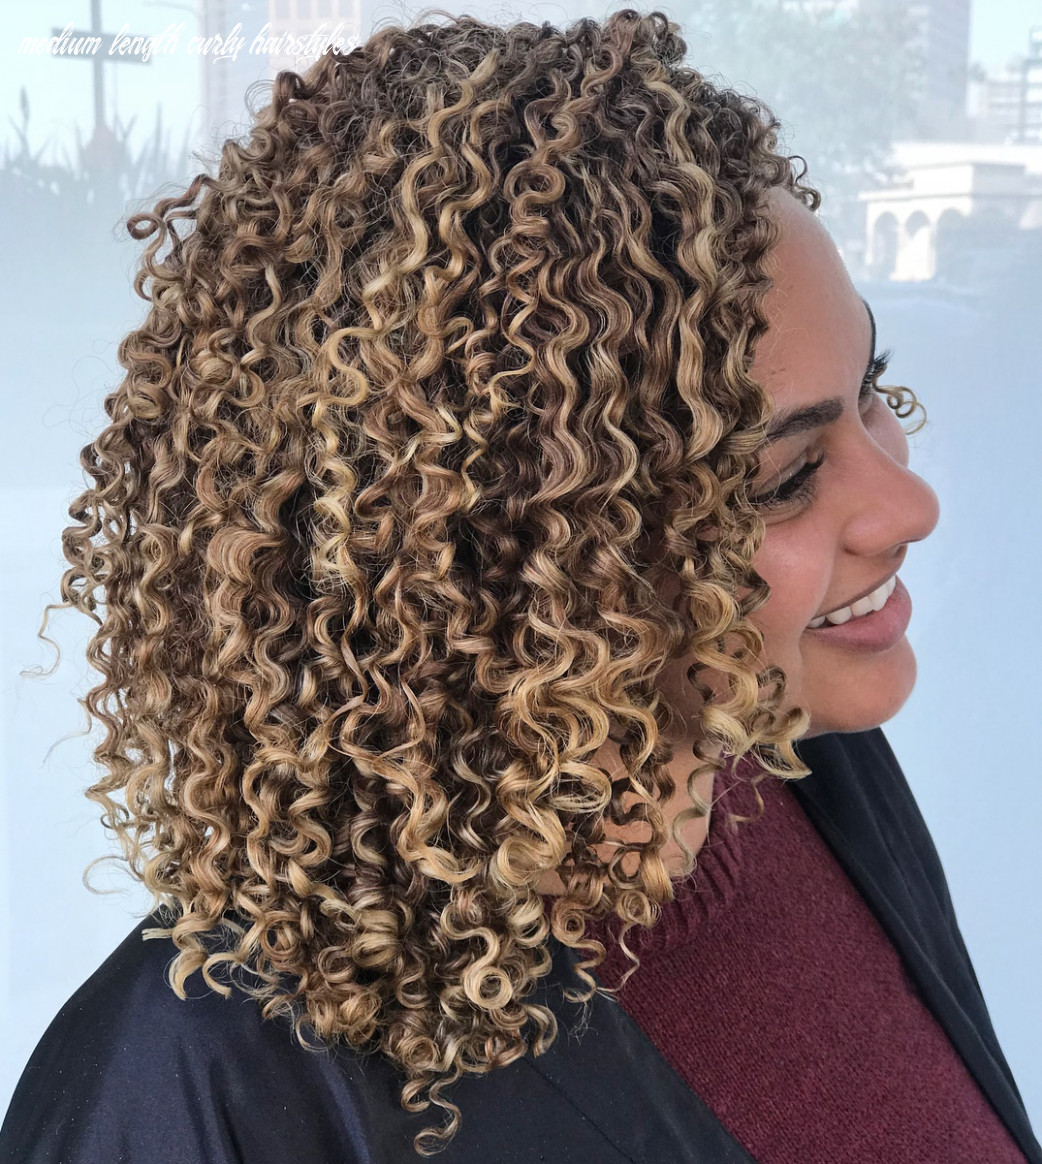 8 Natural Curly Hairstyles & Curly Hair Ideas to Try in 8 ...